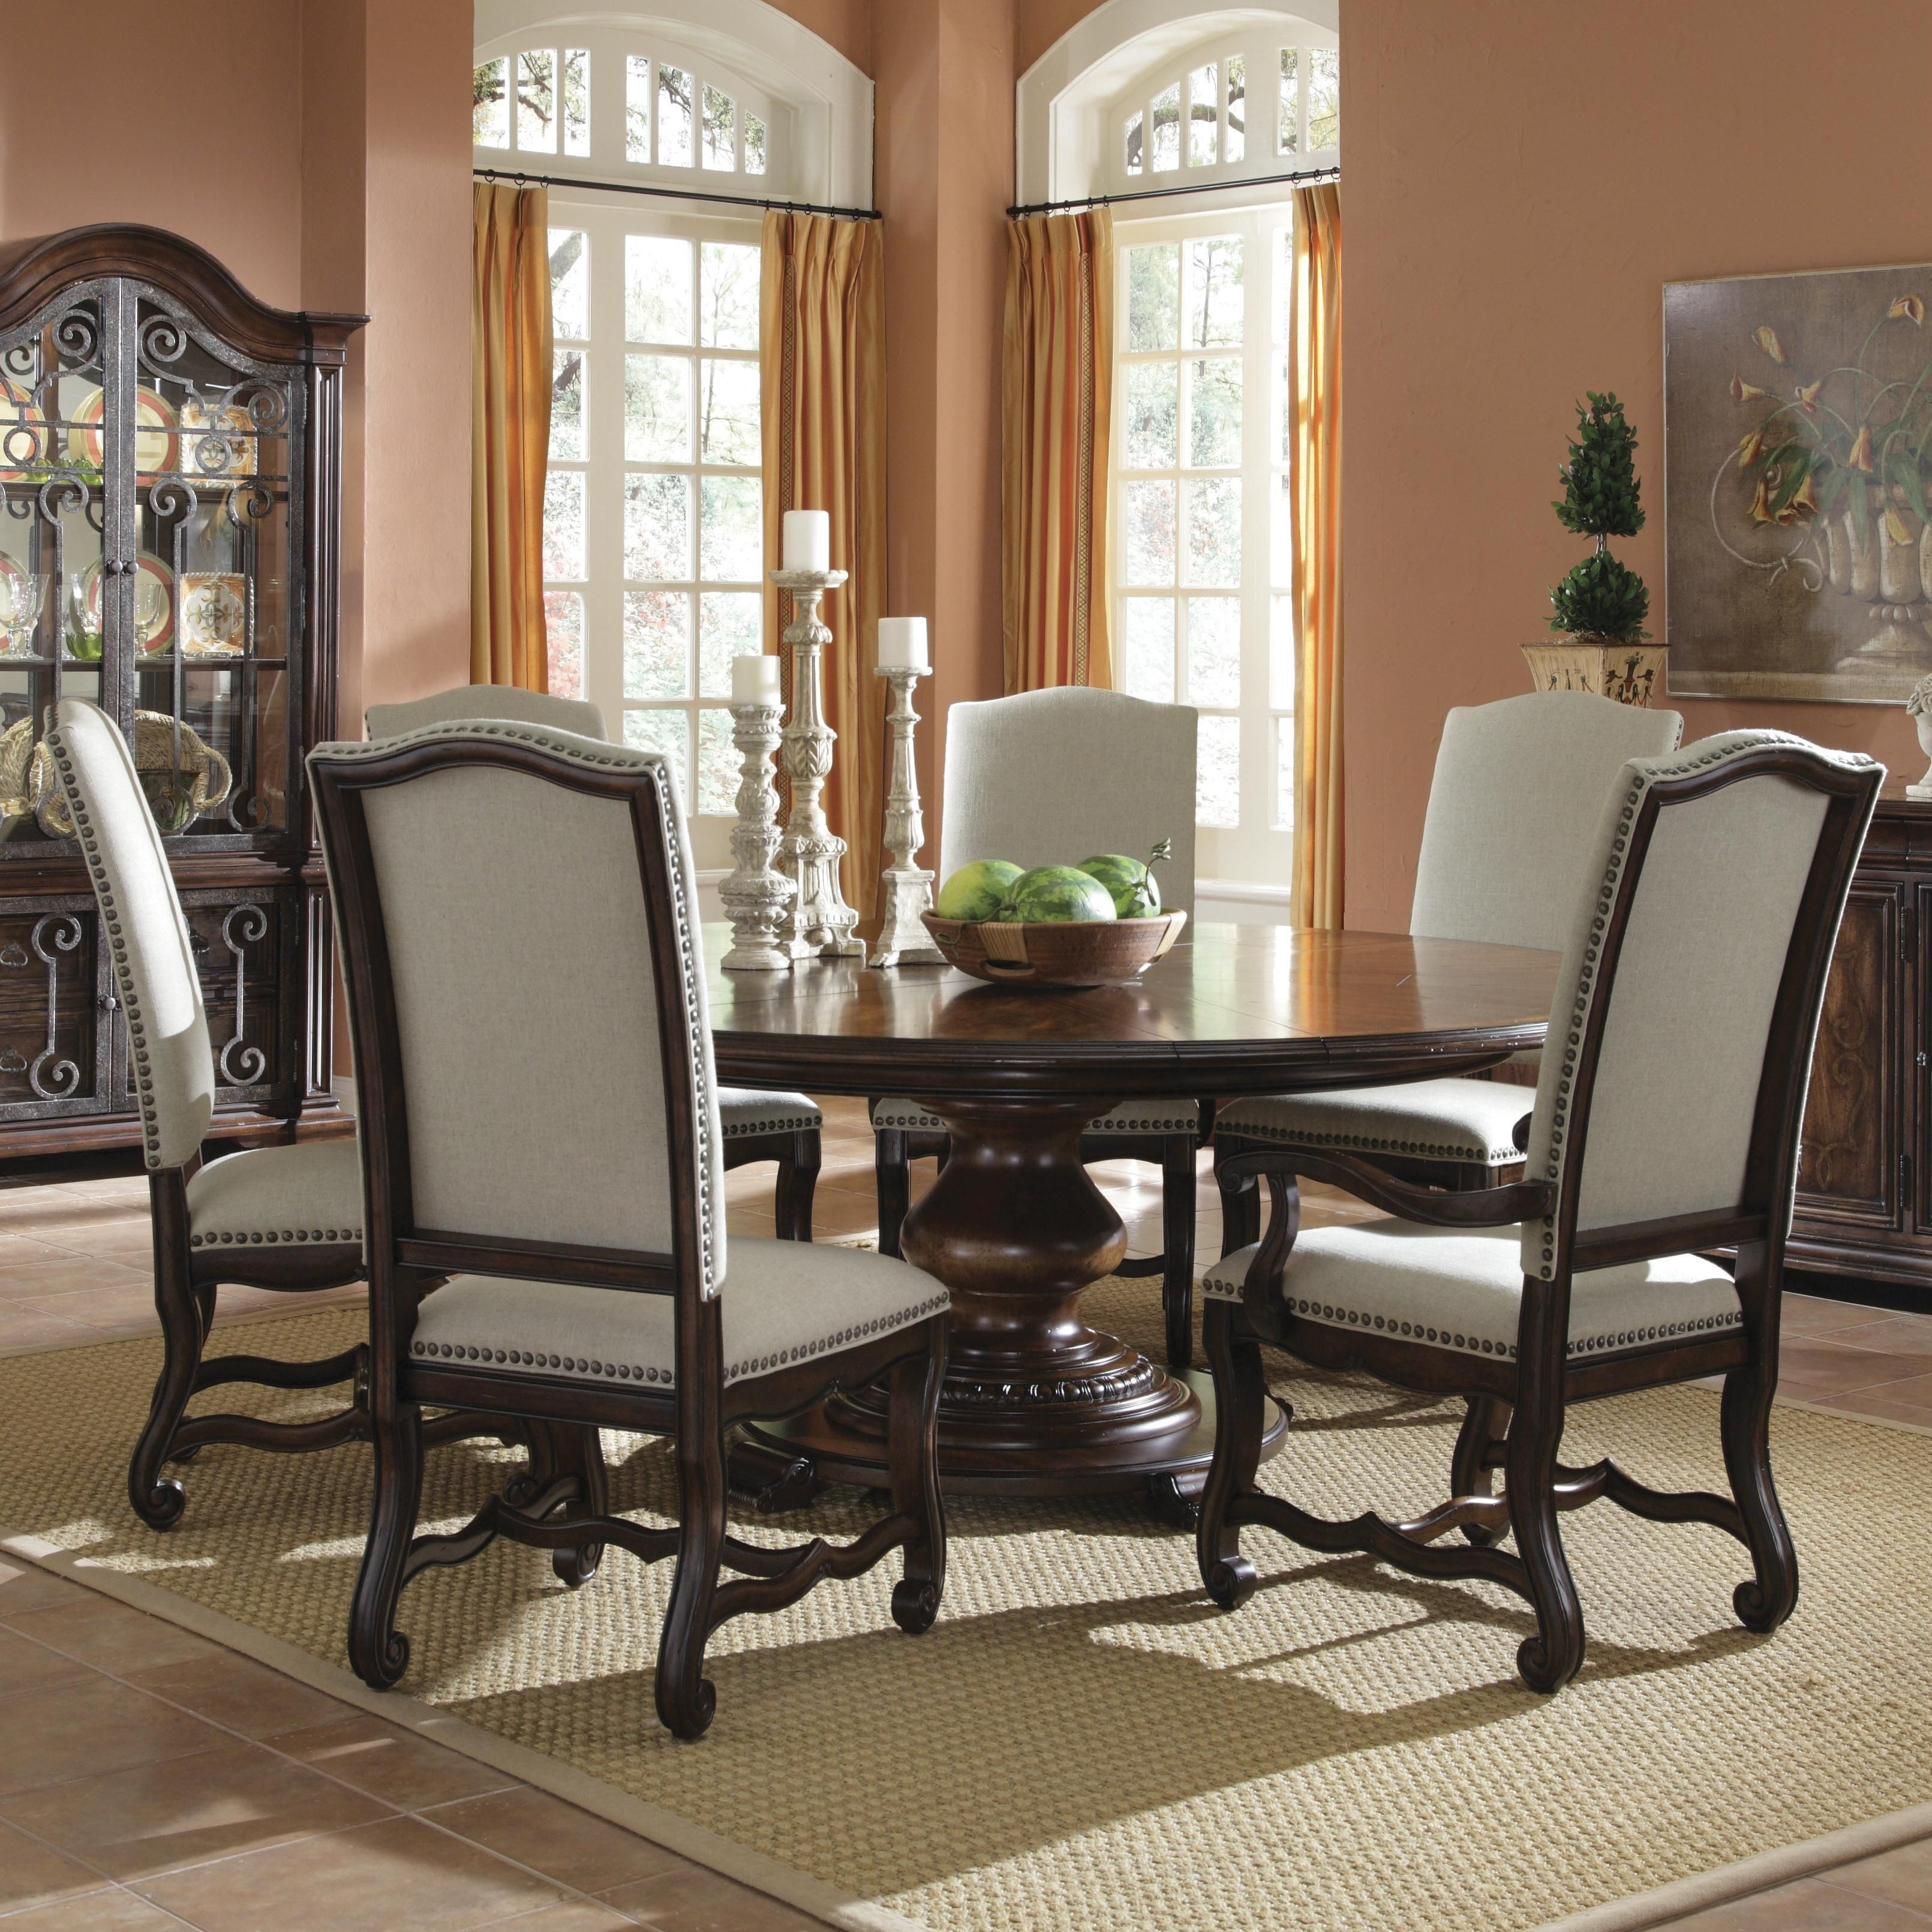 Round Dining Table Set For 6  Httpargharts  Pinterest Pleasing Round Dining Room Sets For 6 Decorating Inspiration